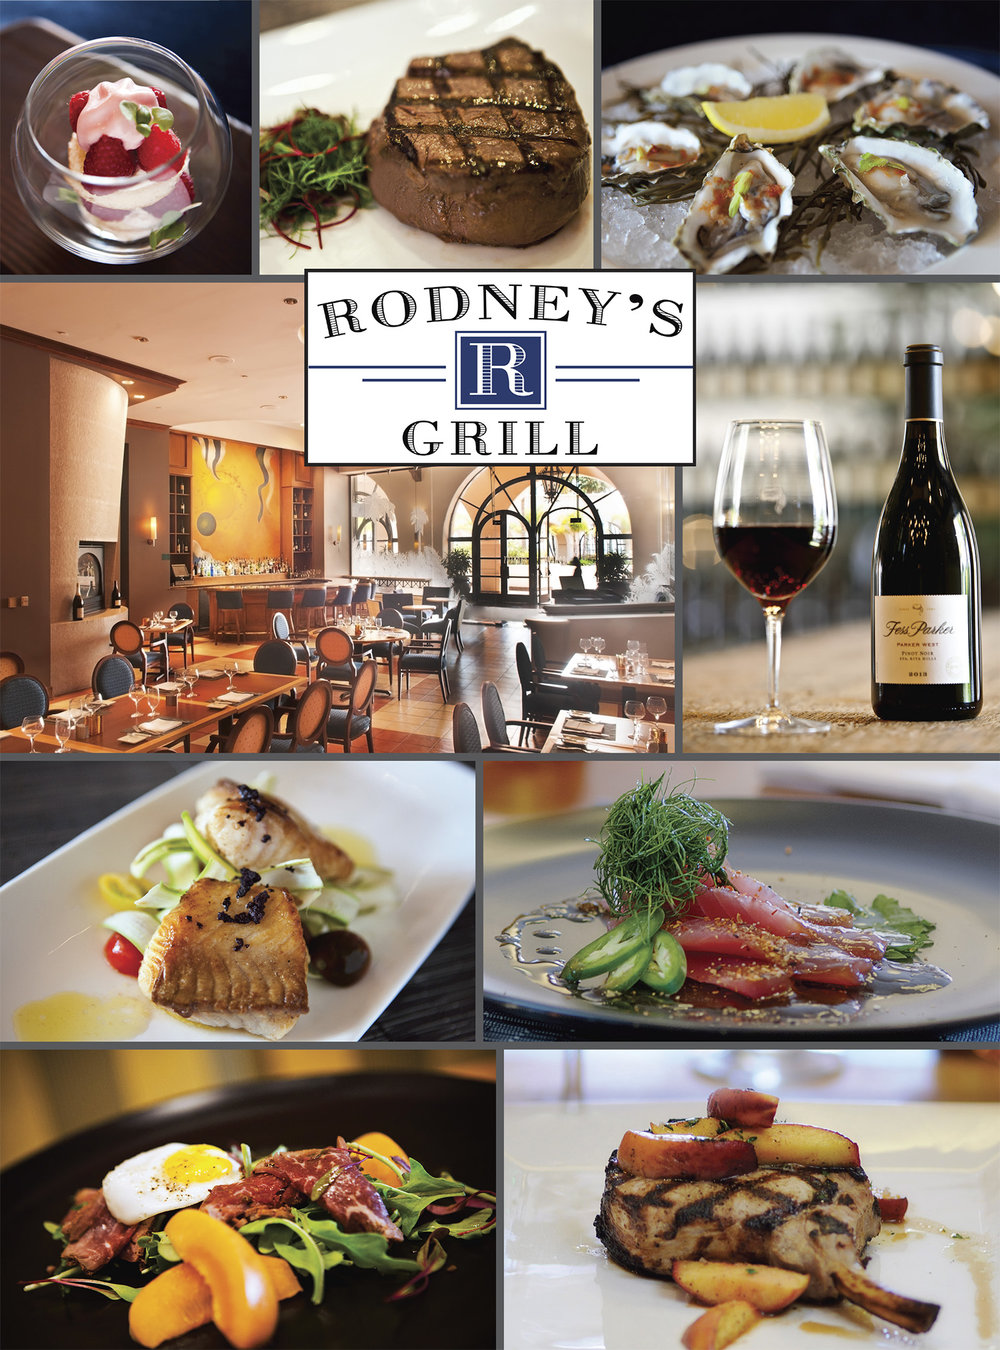 Photogrpahed & Designed Rodney's Bar & Grill interiors and food items for 2016 Advertisement.